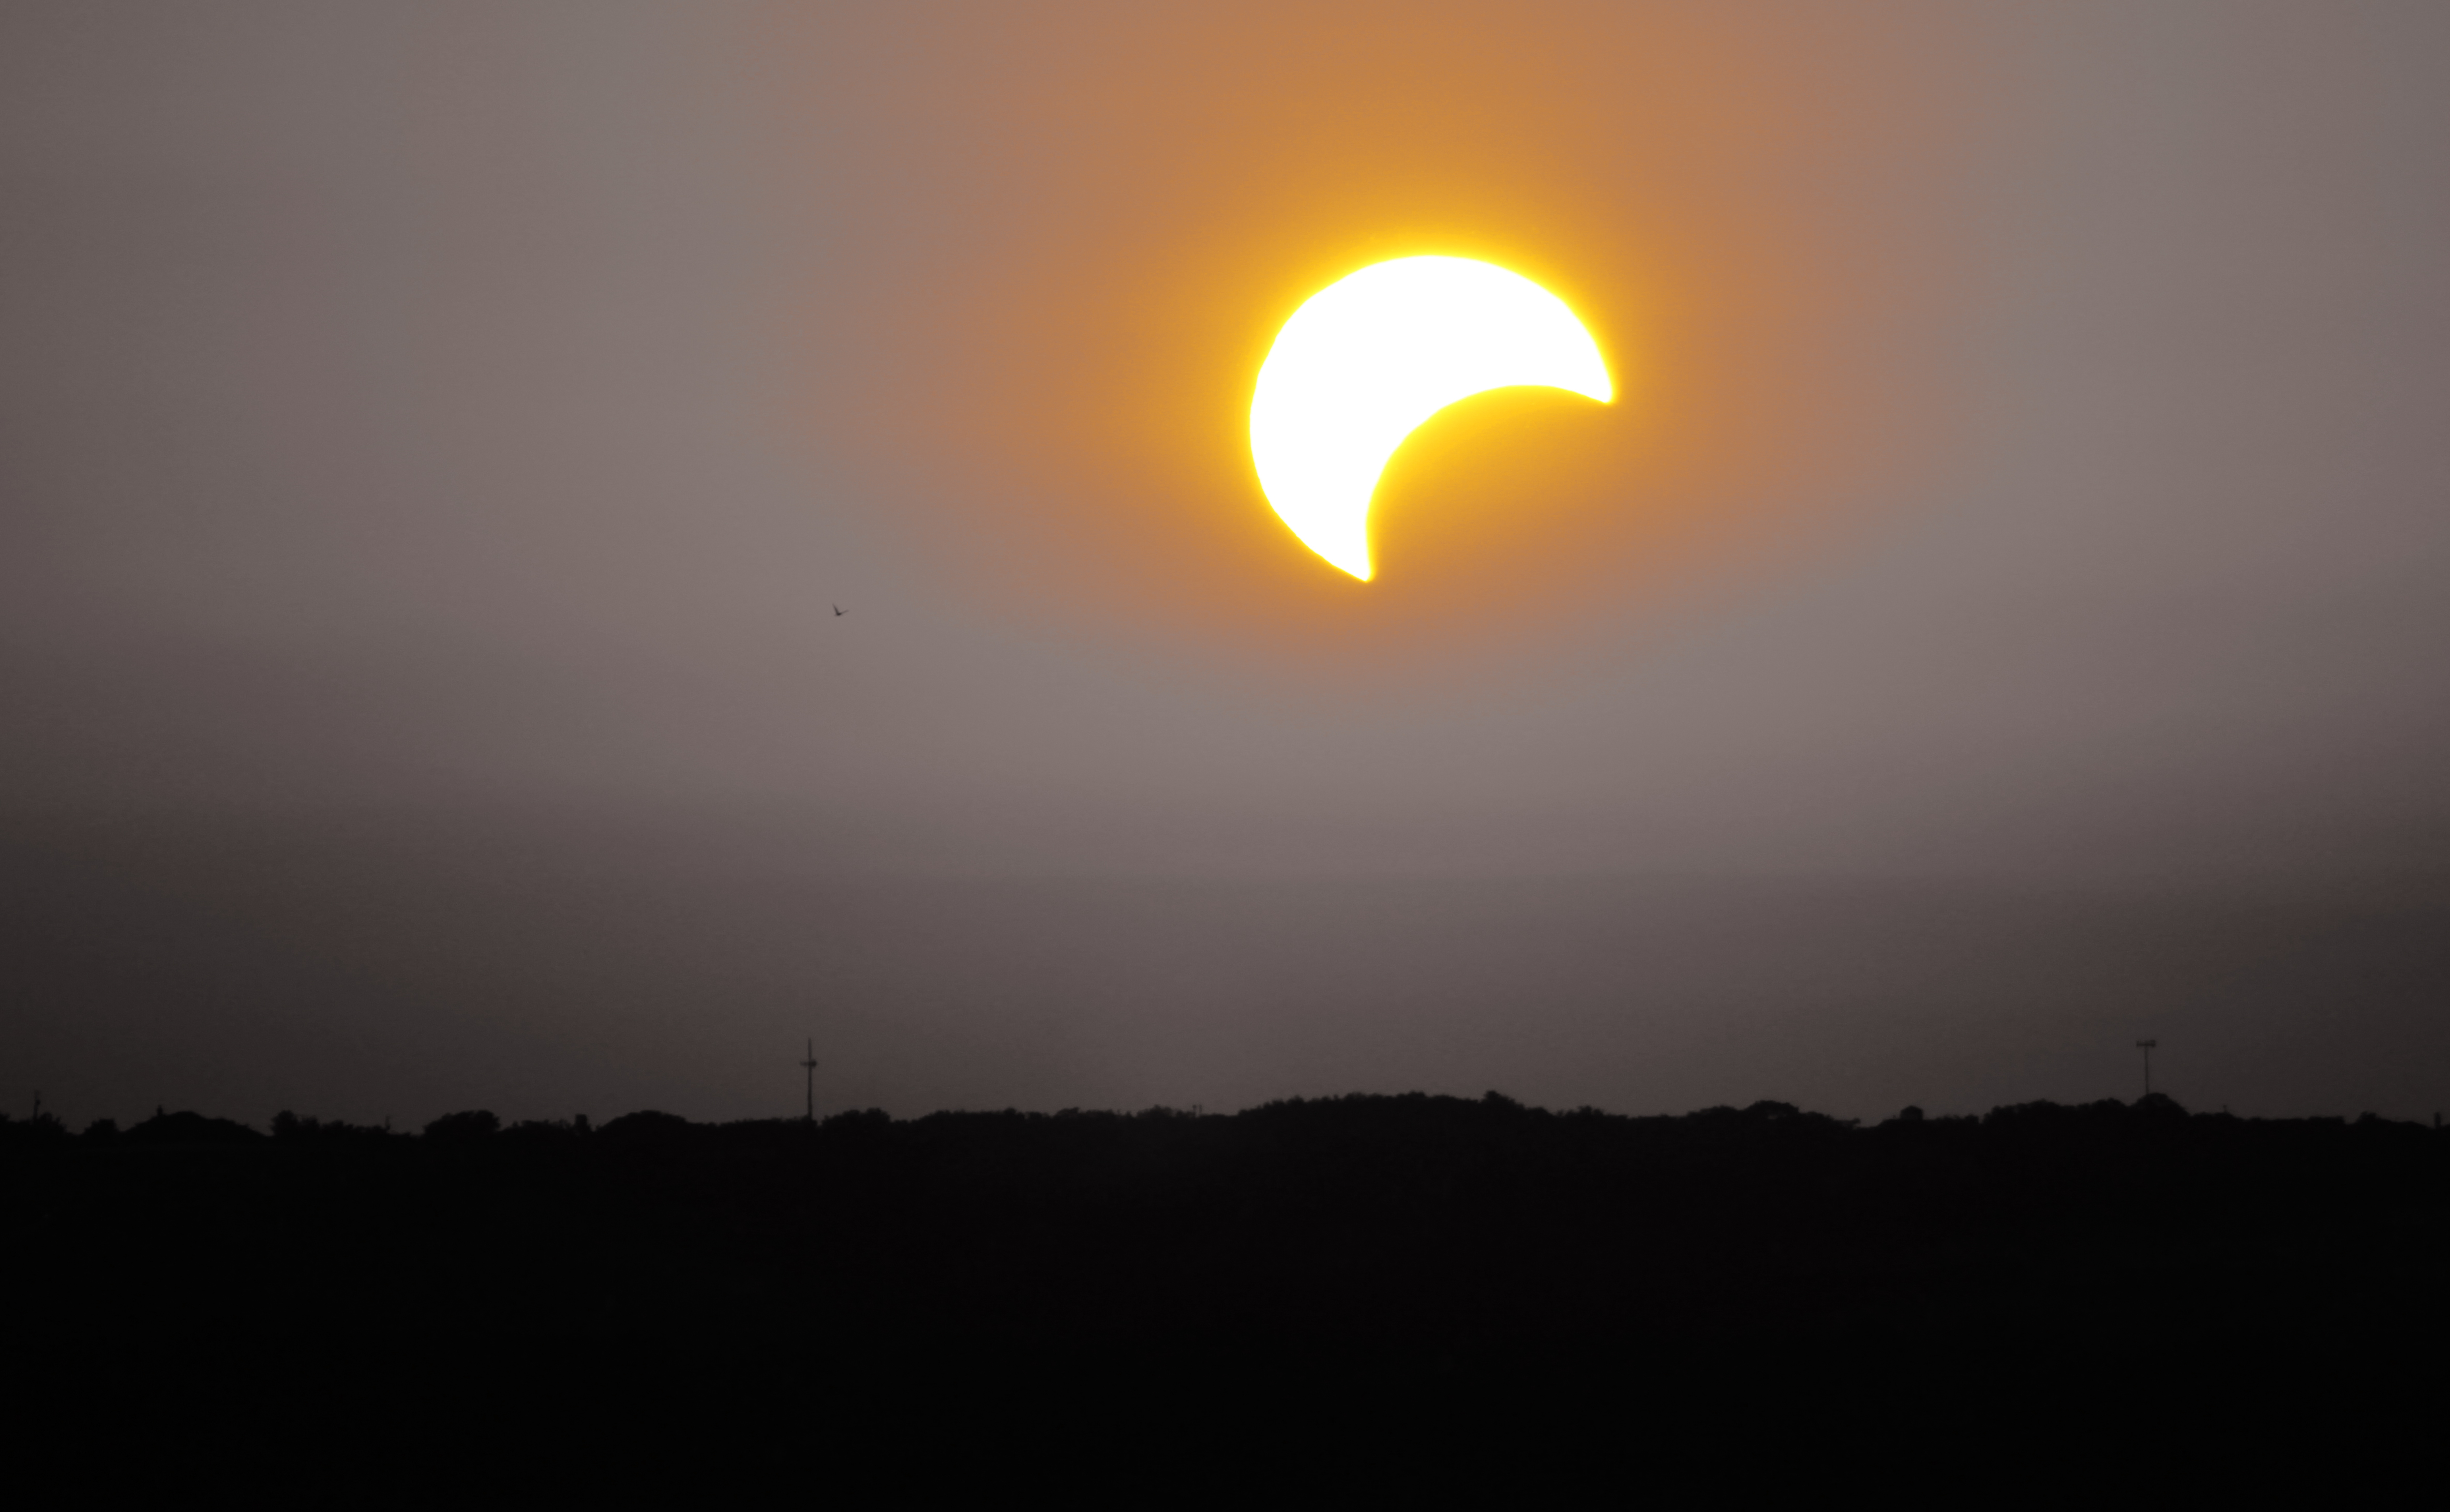 EcLIPSE Colorwashed